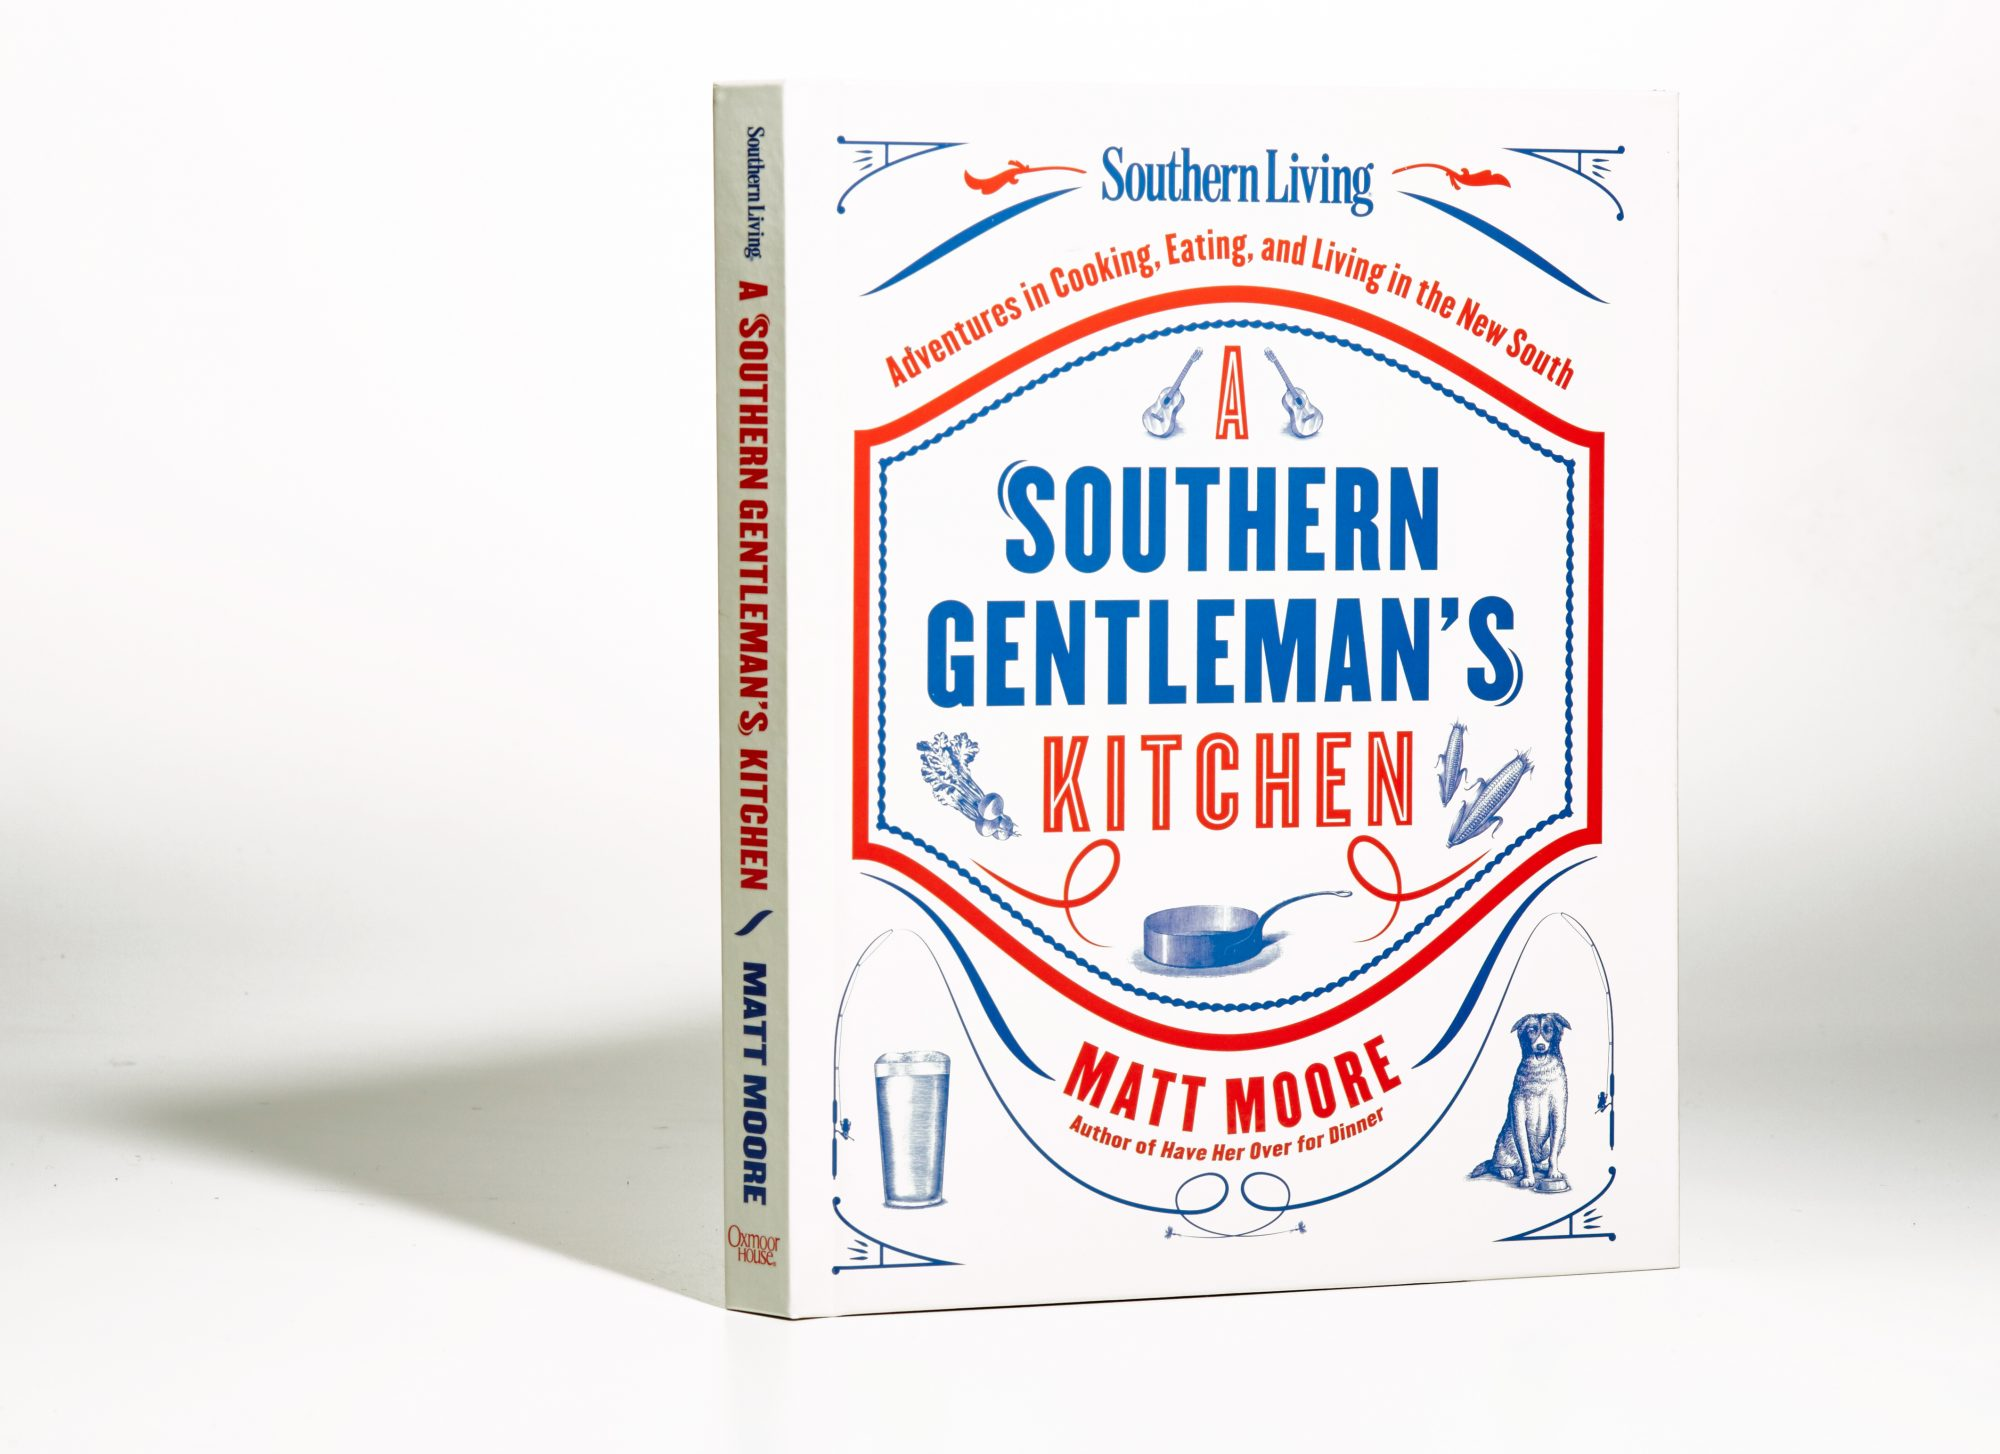 A Southern Gentleman's Kitchen: Adventures in Cooking, Eating, and Living in the New South